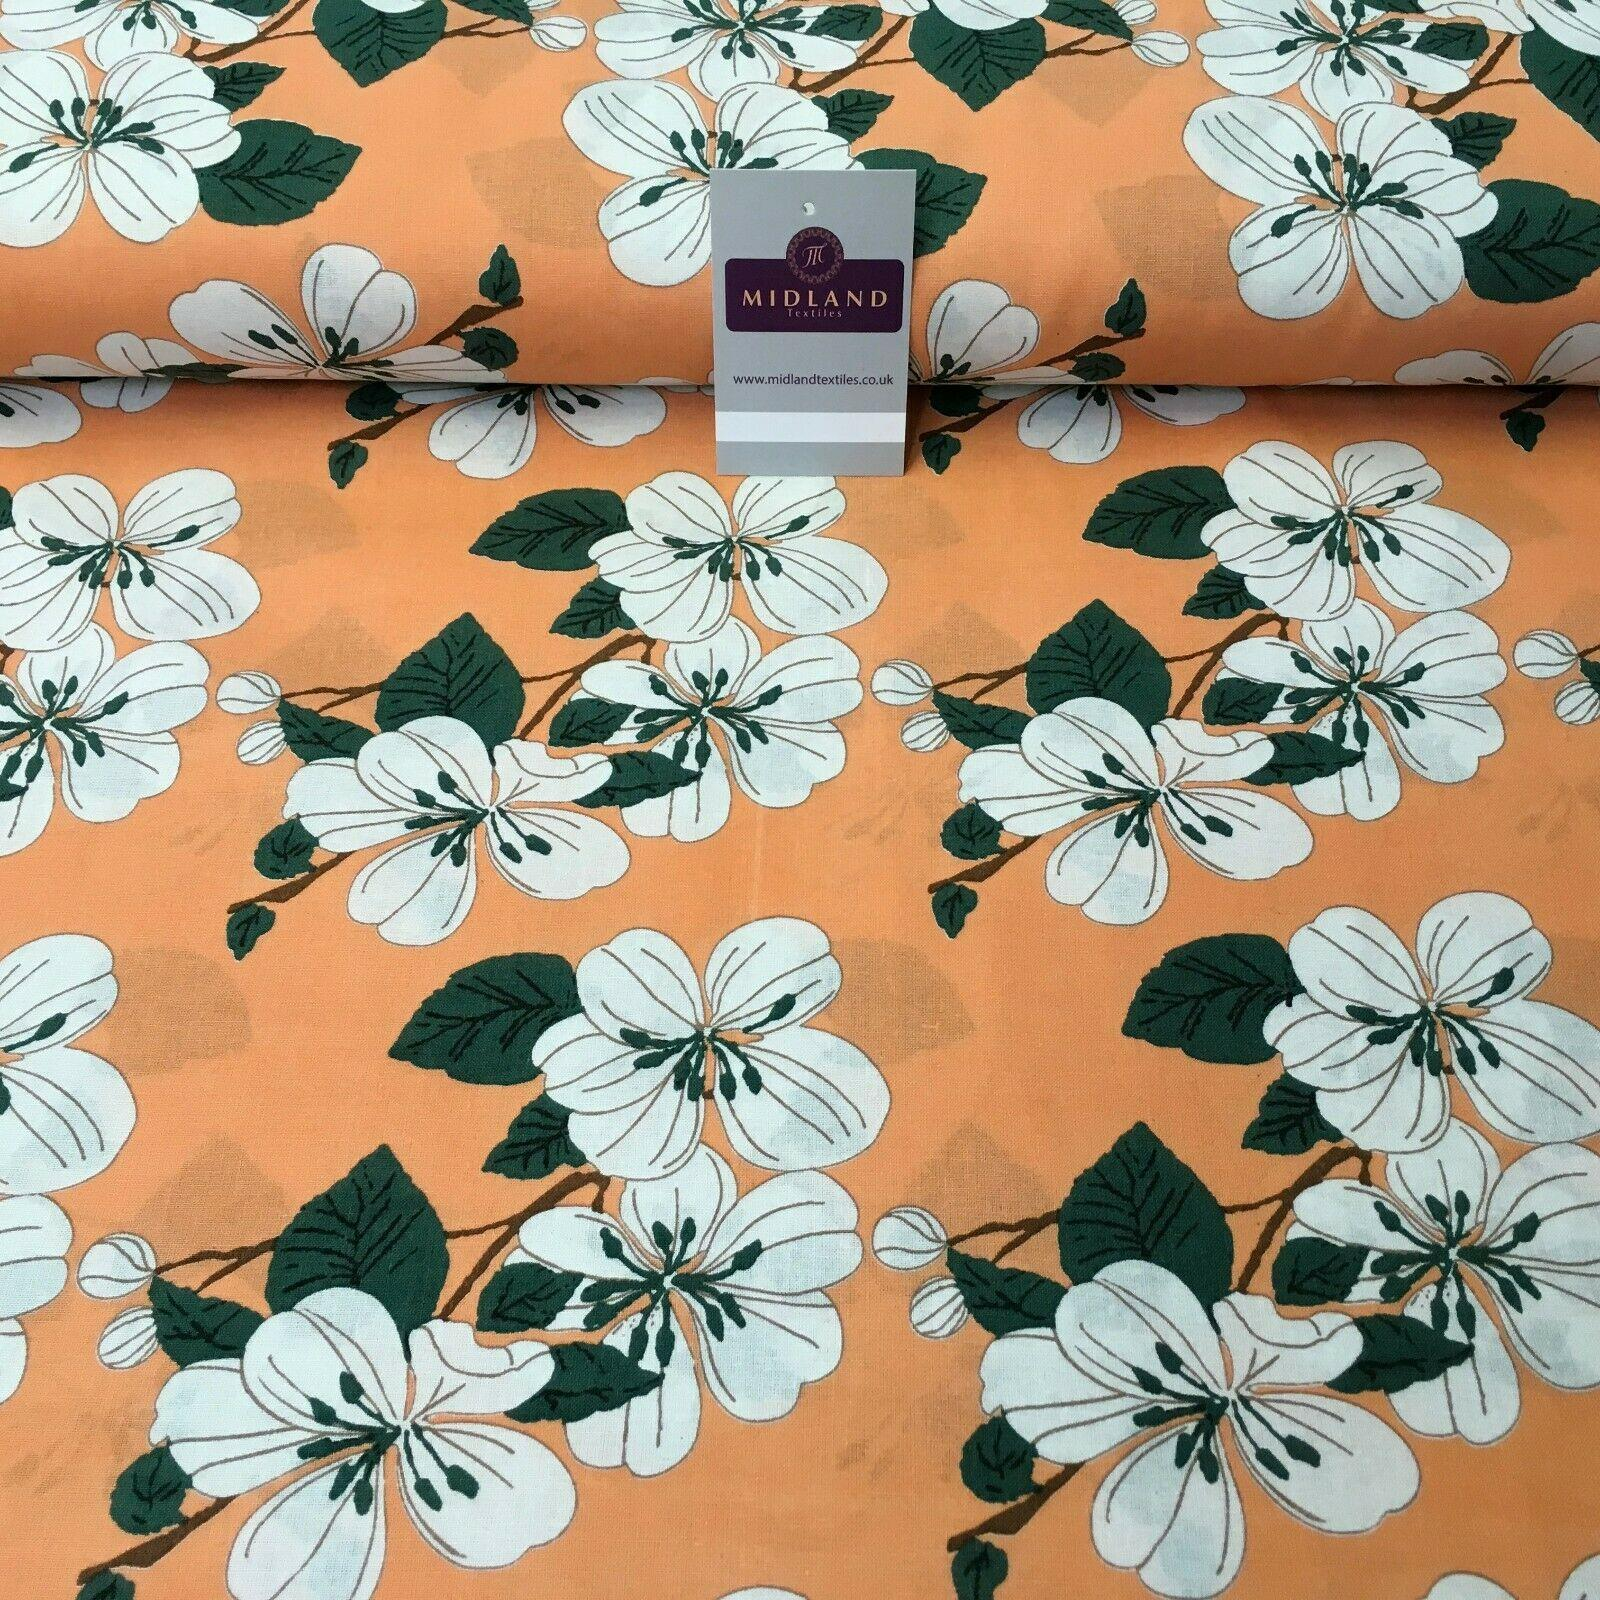 Peach Floral Printed Cotton Linen Dress Fabric 150cm Wide MK1086-3